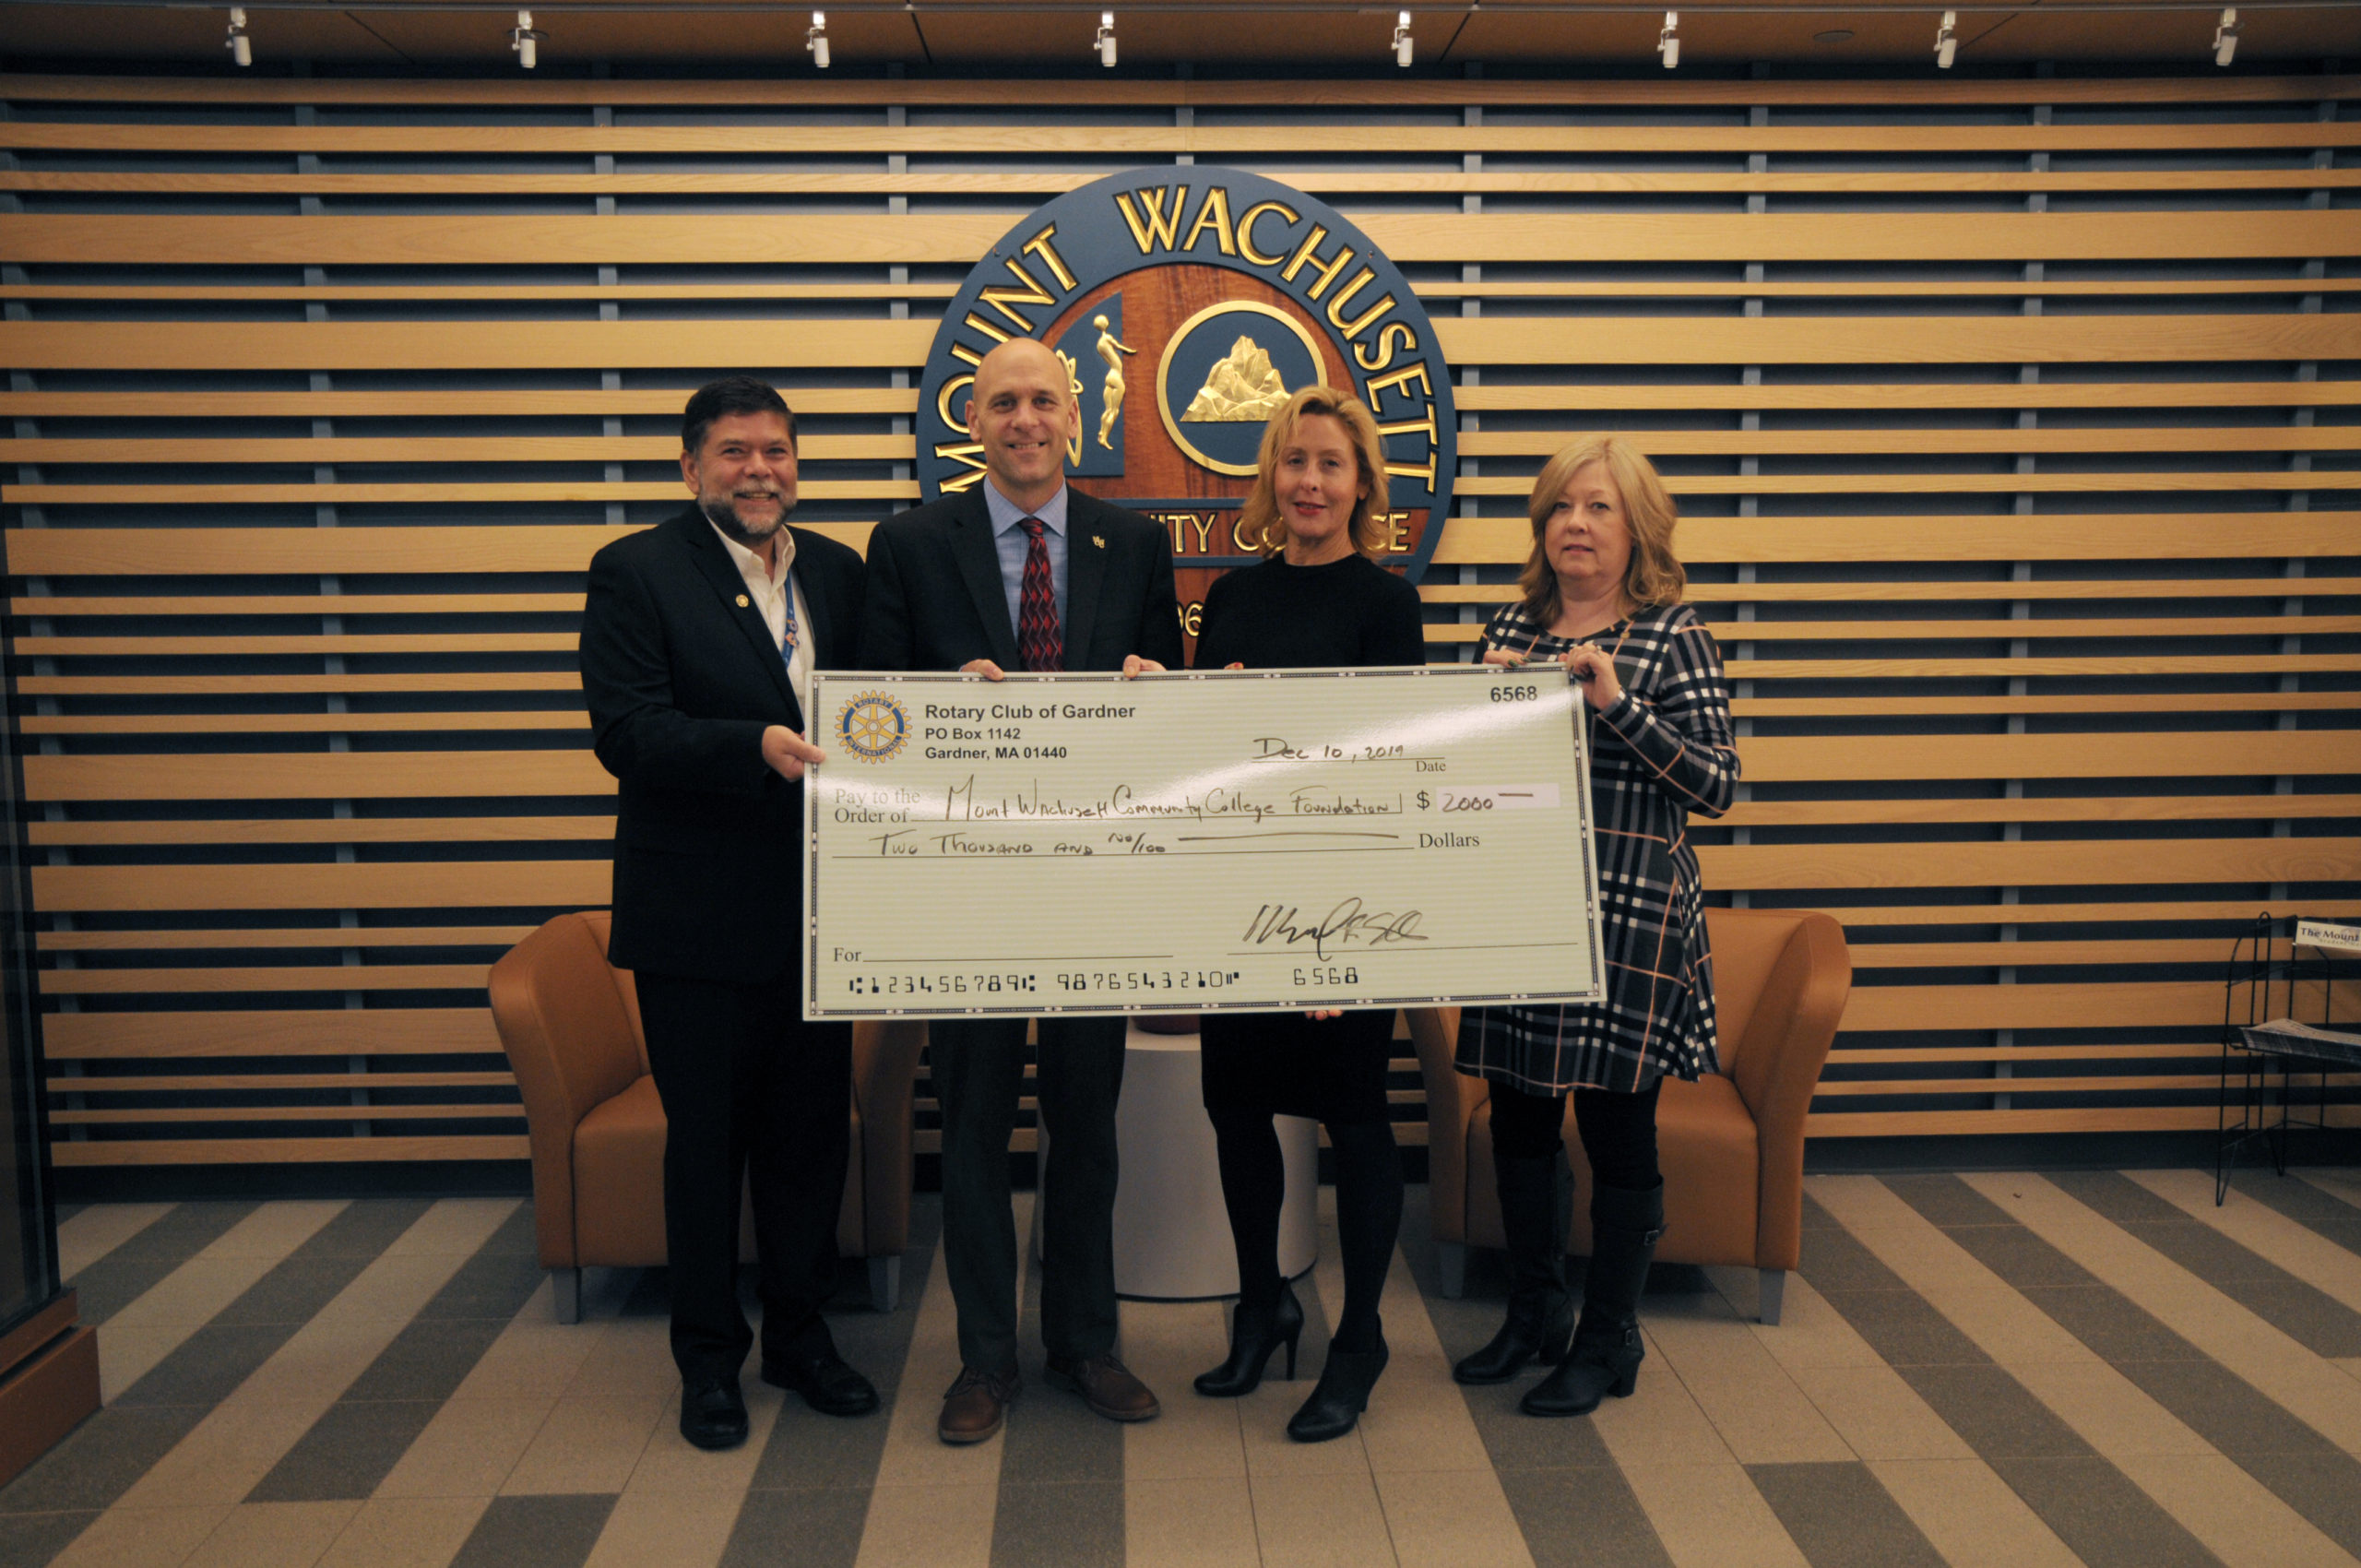 MWCC Gardner Rotary Club Donation Dec 2019